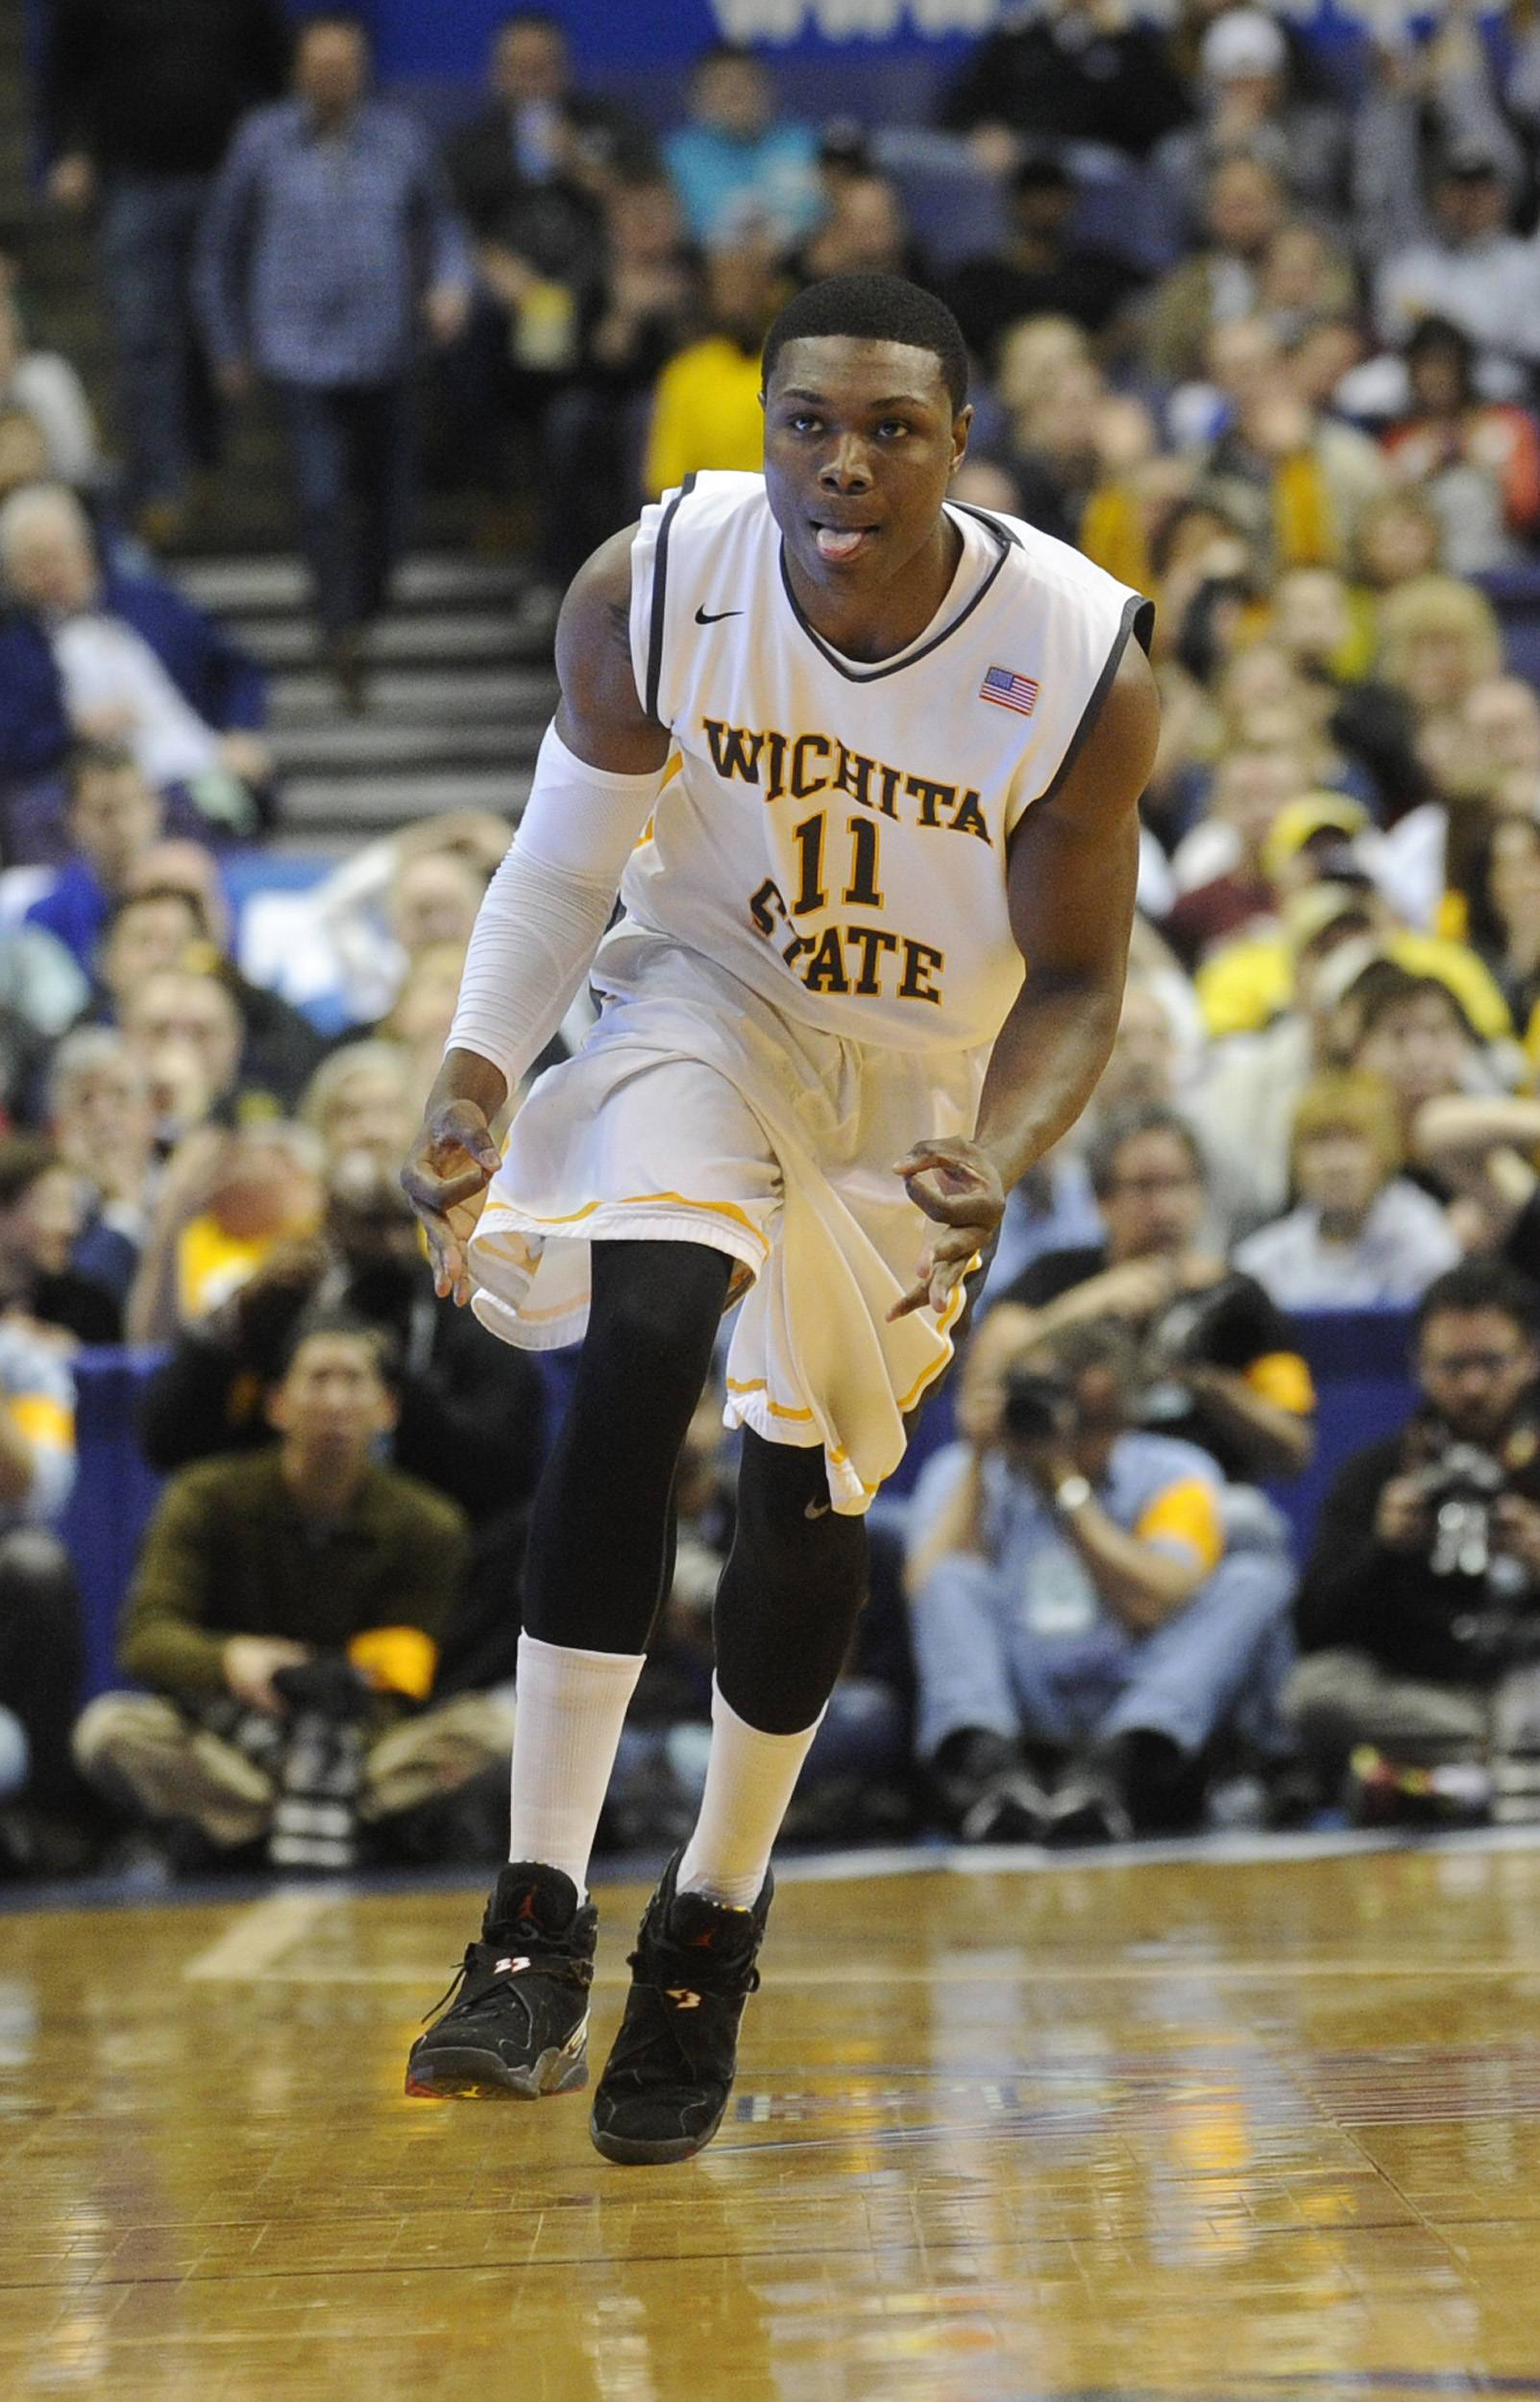 Wichita State's Cleanthony Early (11) celebrates a basket against Missouri State during a game in the semifinals of the Missouri Valley Conference men's tournament Saturday in St. Louis.